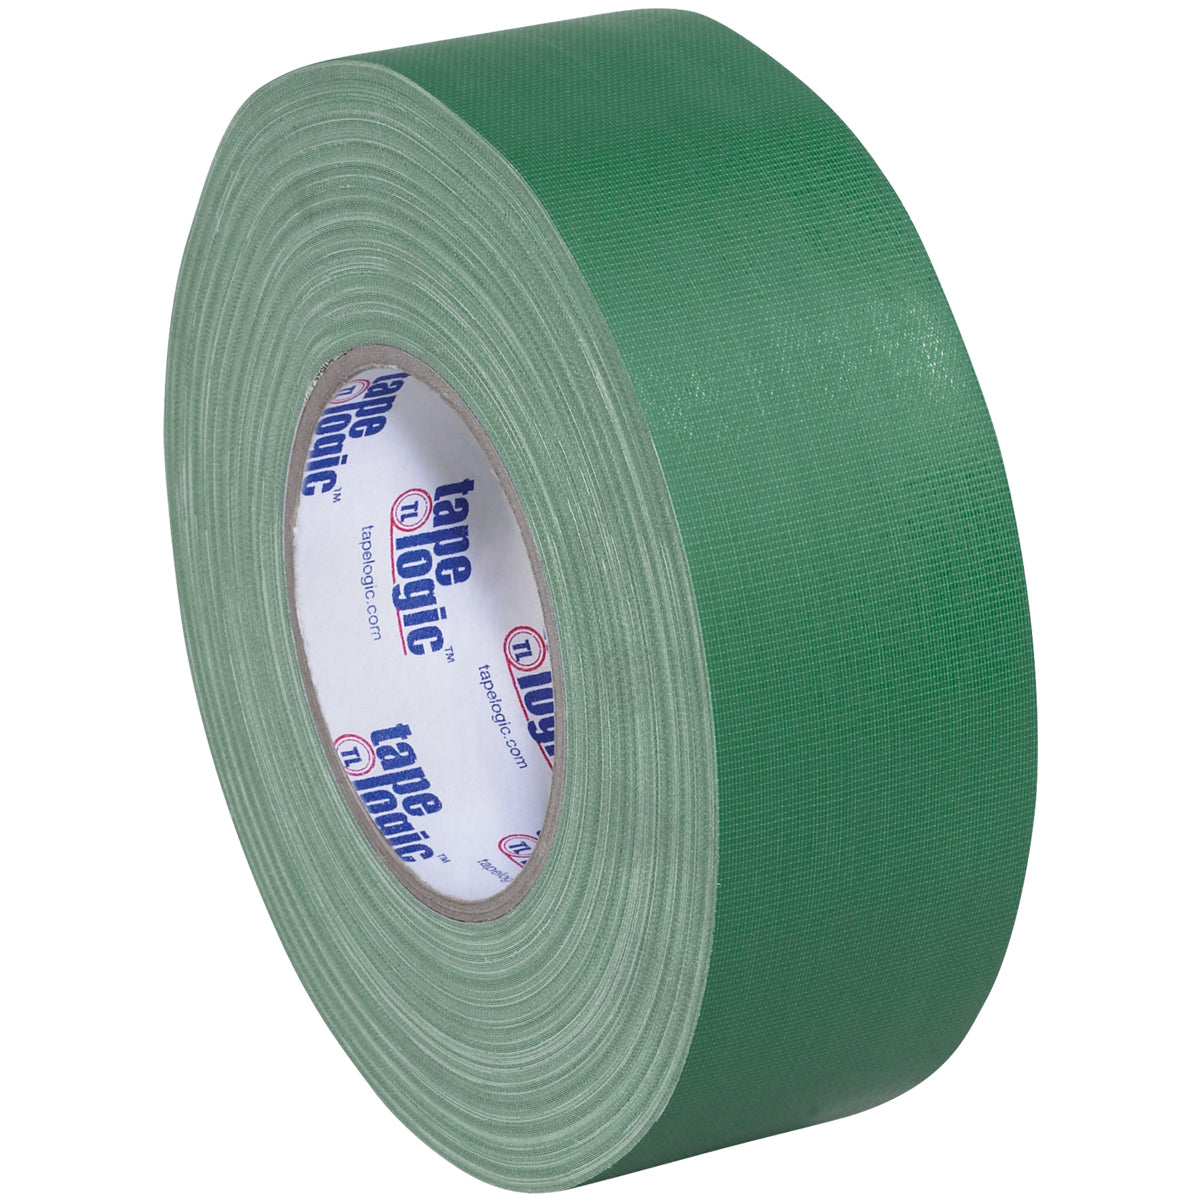 24 PACK GAFFERS STAGE TAPE FULL CASE 2 INCH X 60 YARDS GREEN